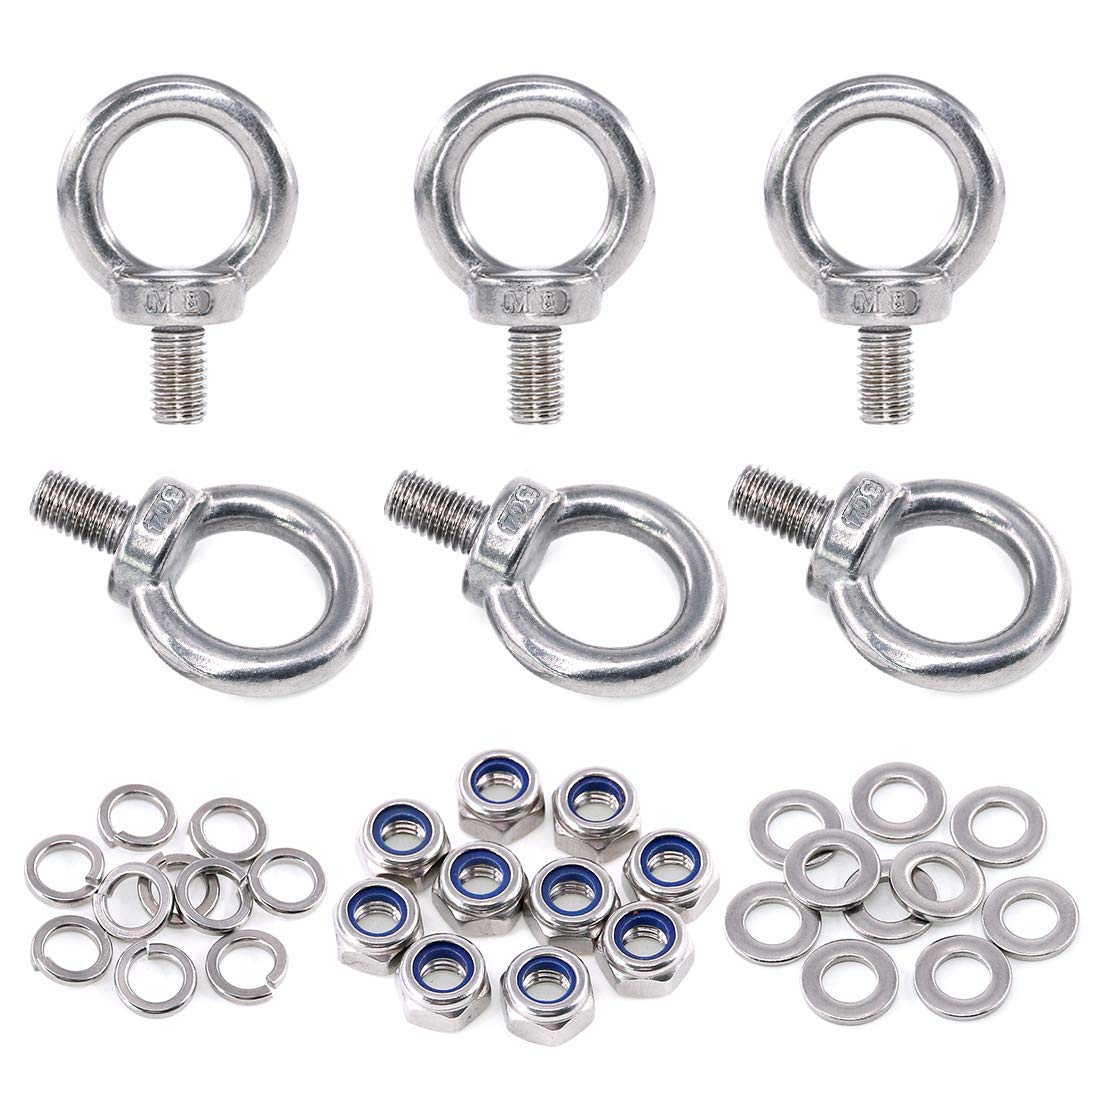 Swpeet 36Pcs 304 Stainless Steel M8 Male Thread Lifting Ring Eye Bolt Kit, Including 6Pcs M8 Eye Bolt with 10Pcs Lock Nuts, 10Pcs Lock Washers and 10Pcs Flat Washers